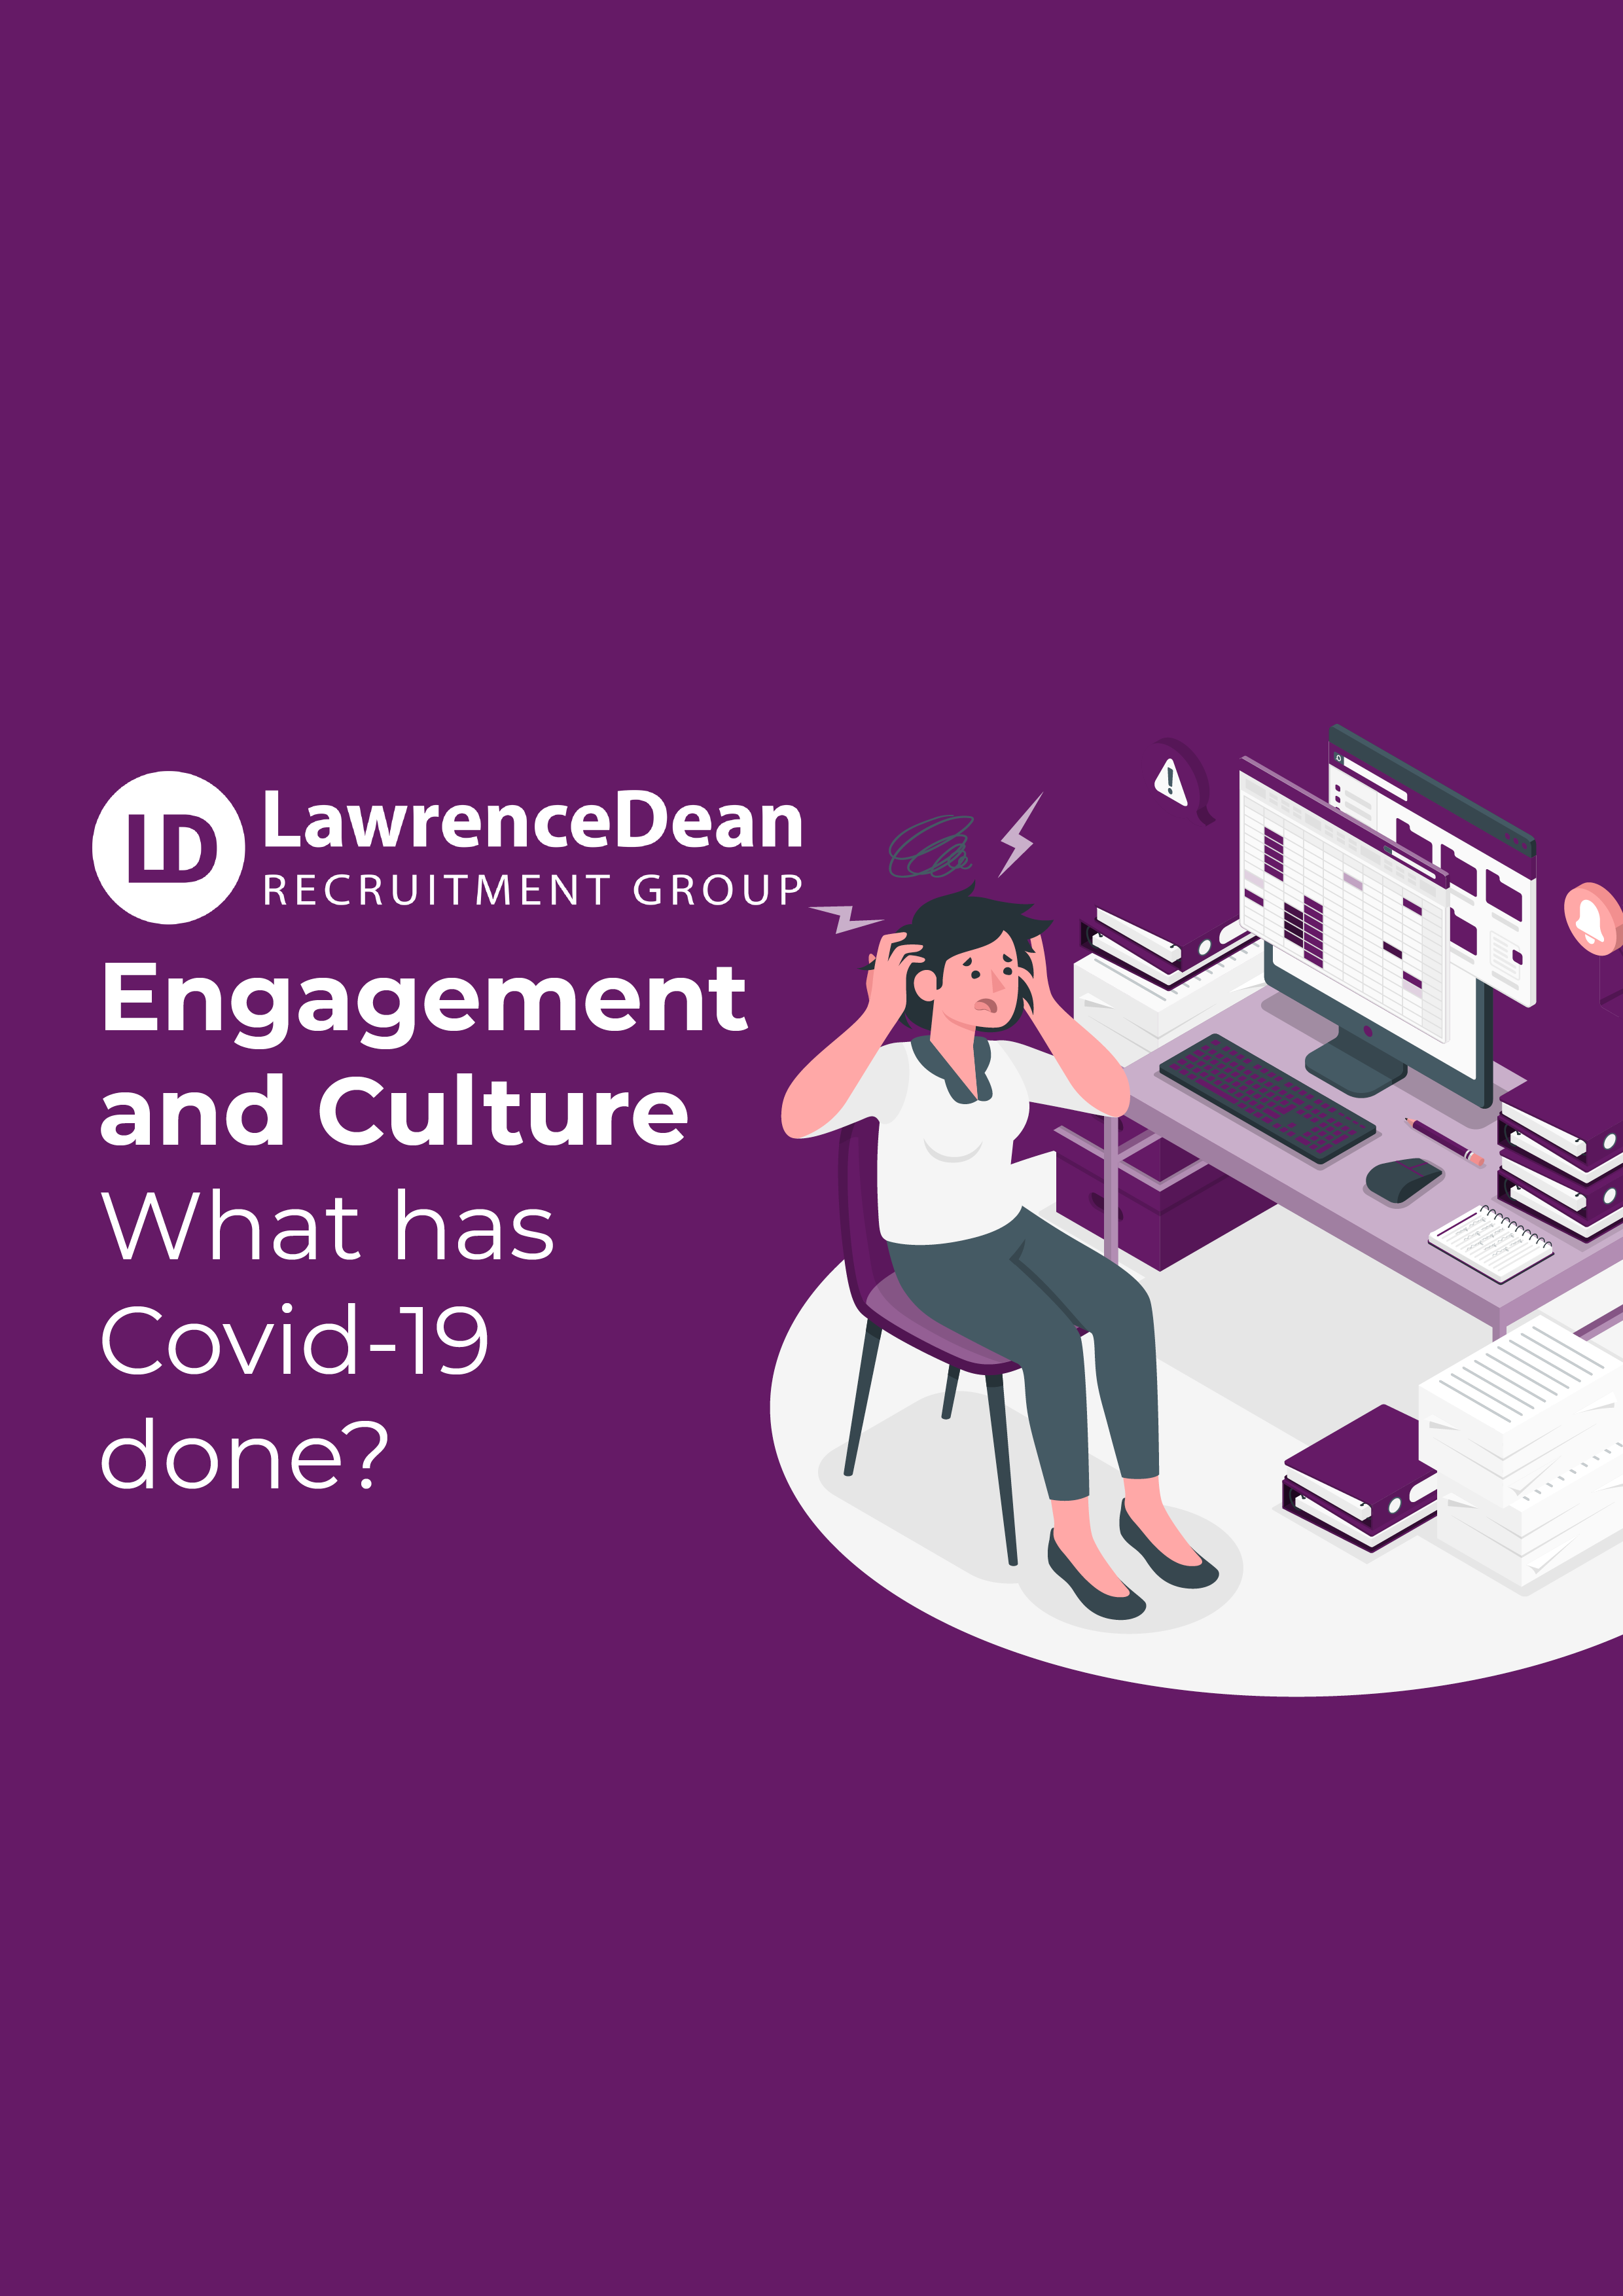 Engagement and Culture - What has Covid-19 done?